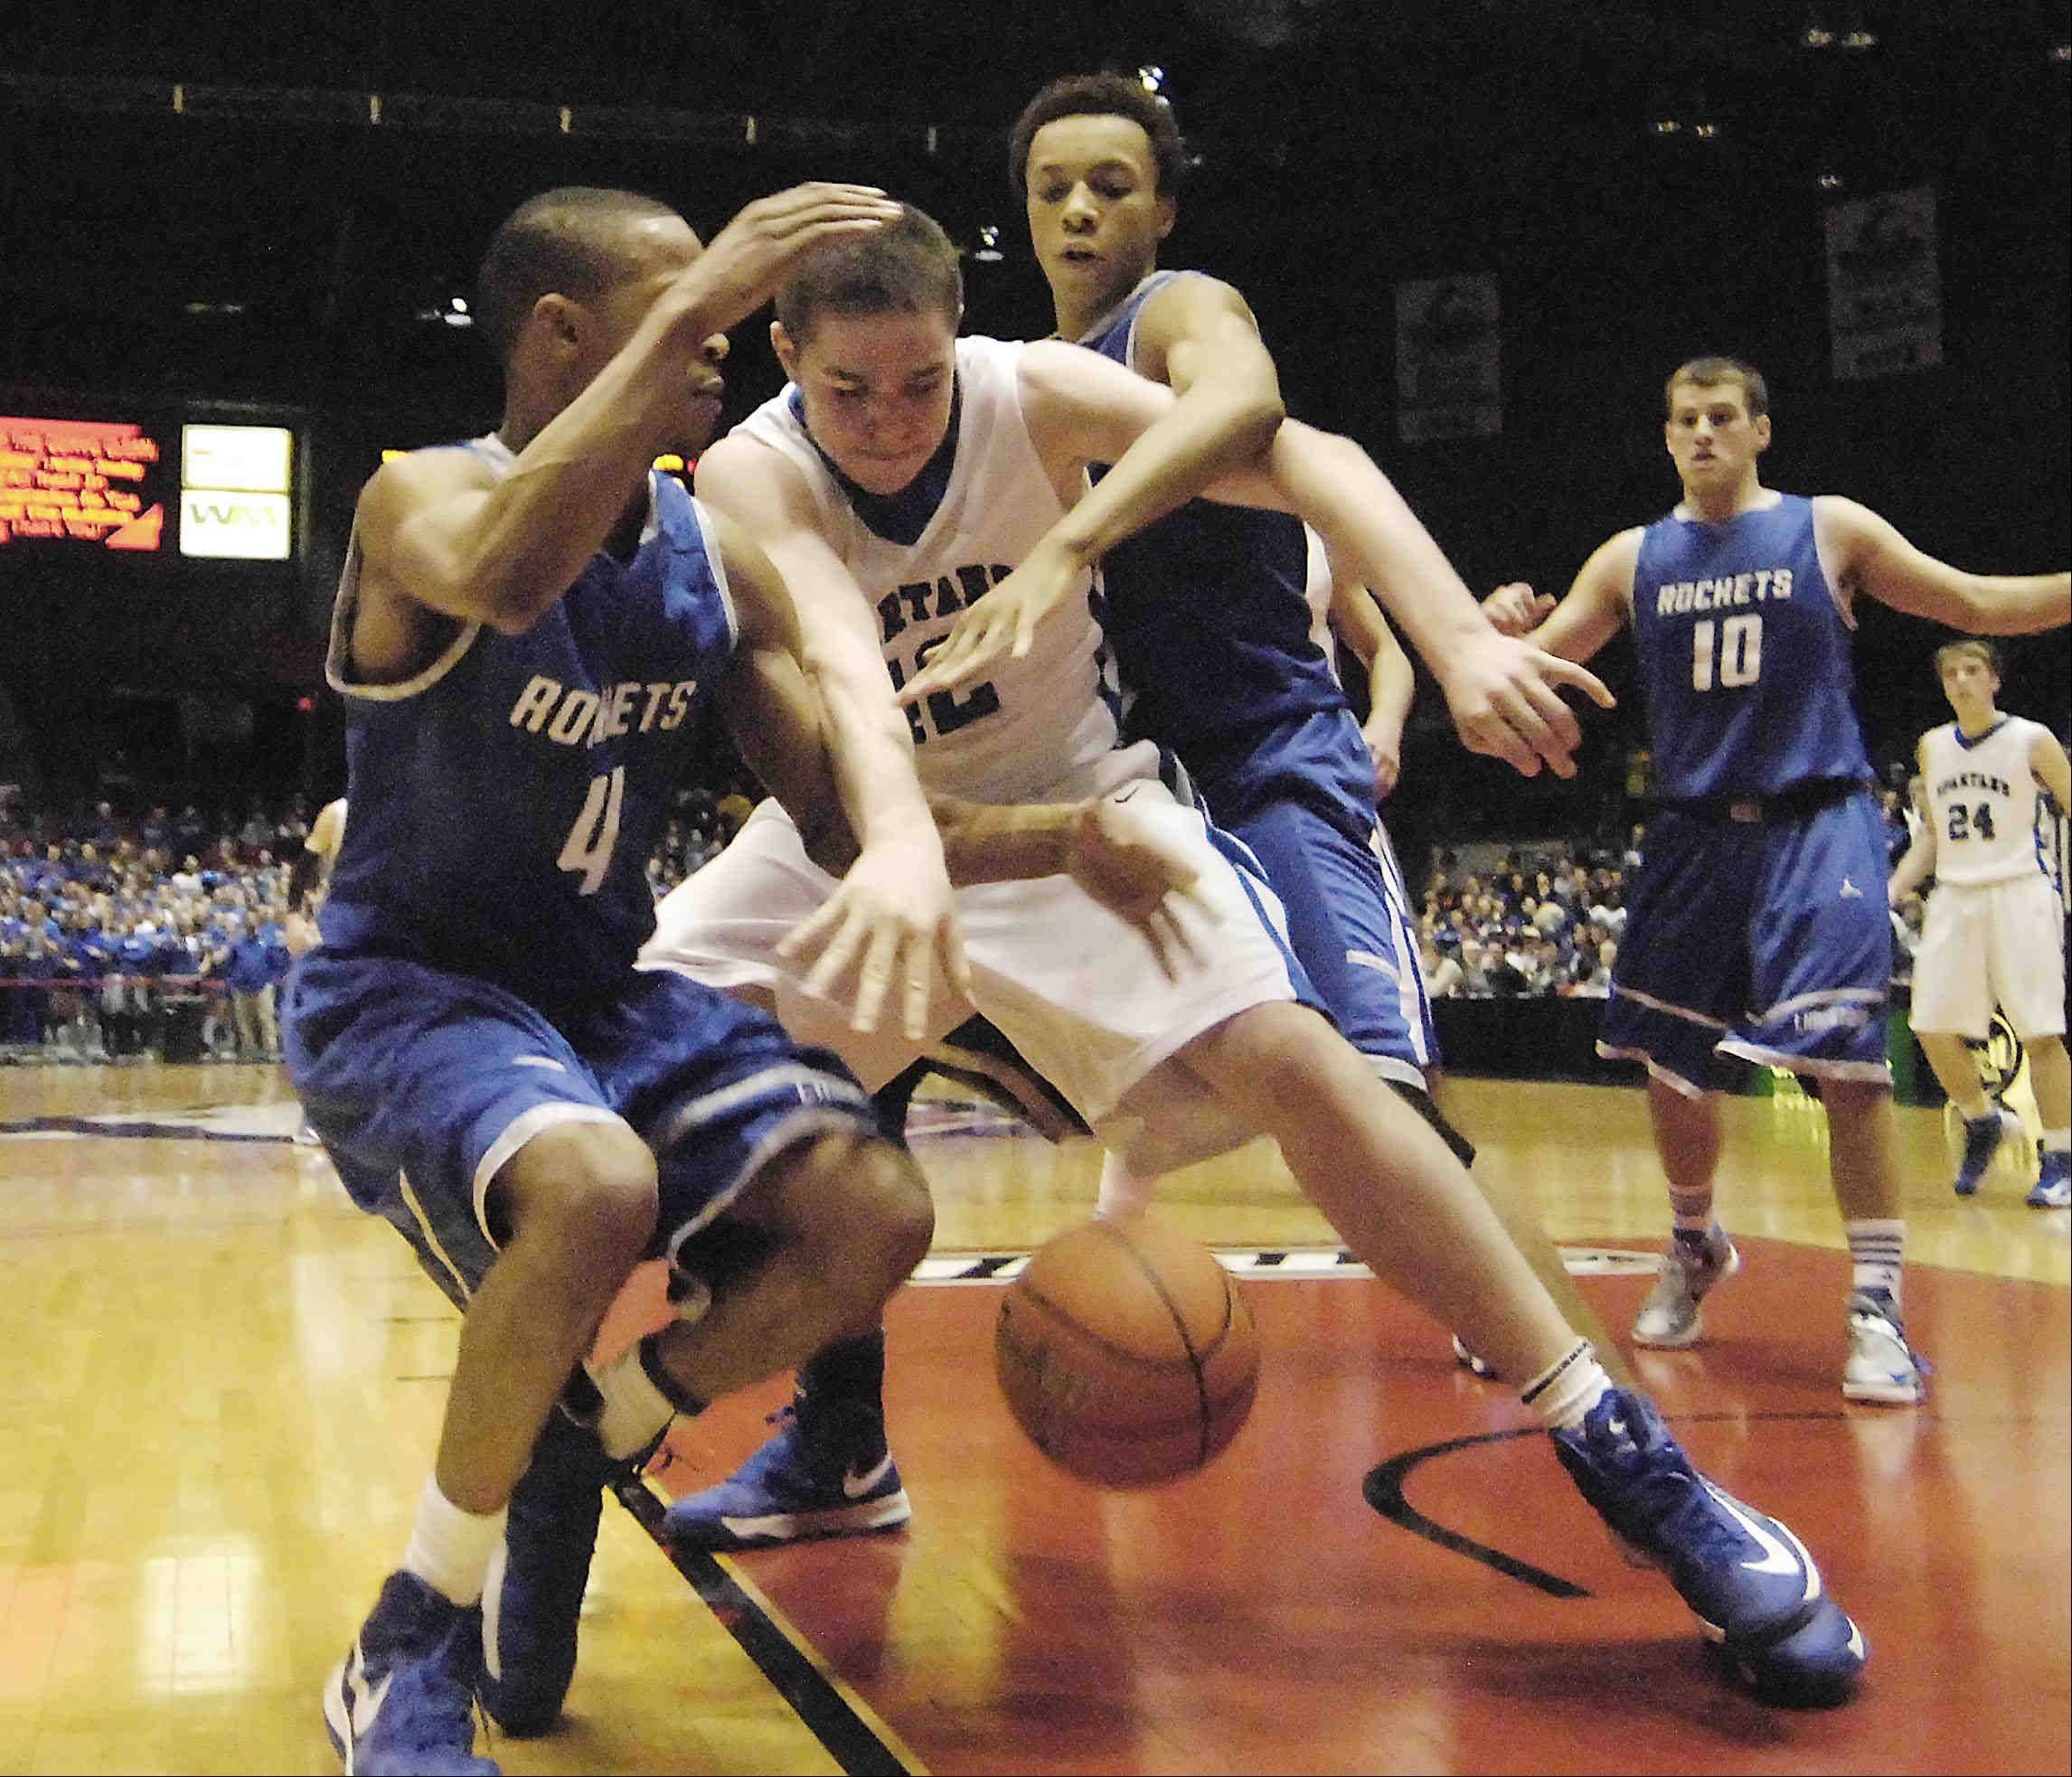 St. Francis' Killan Brown loses the ball under the defense of Bartonville Limestone's Lorenzo Burns and David Anderson late in the game Tuesday in the 3A Dekalb supersectional game at the Northern Illinois Convocation Center.